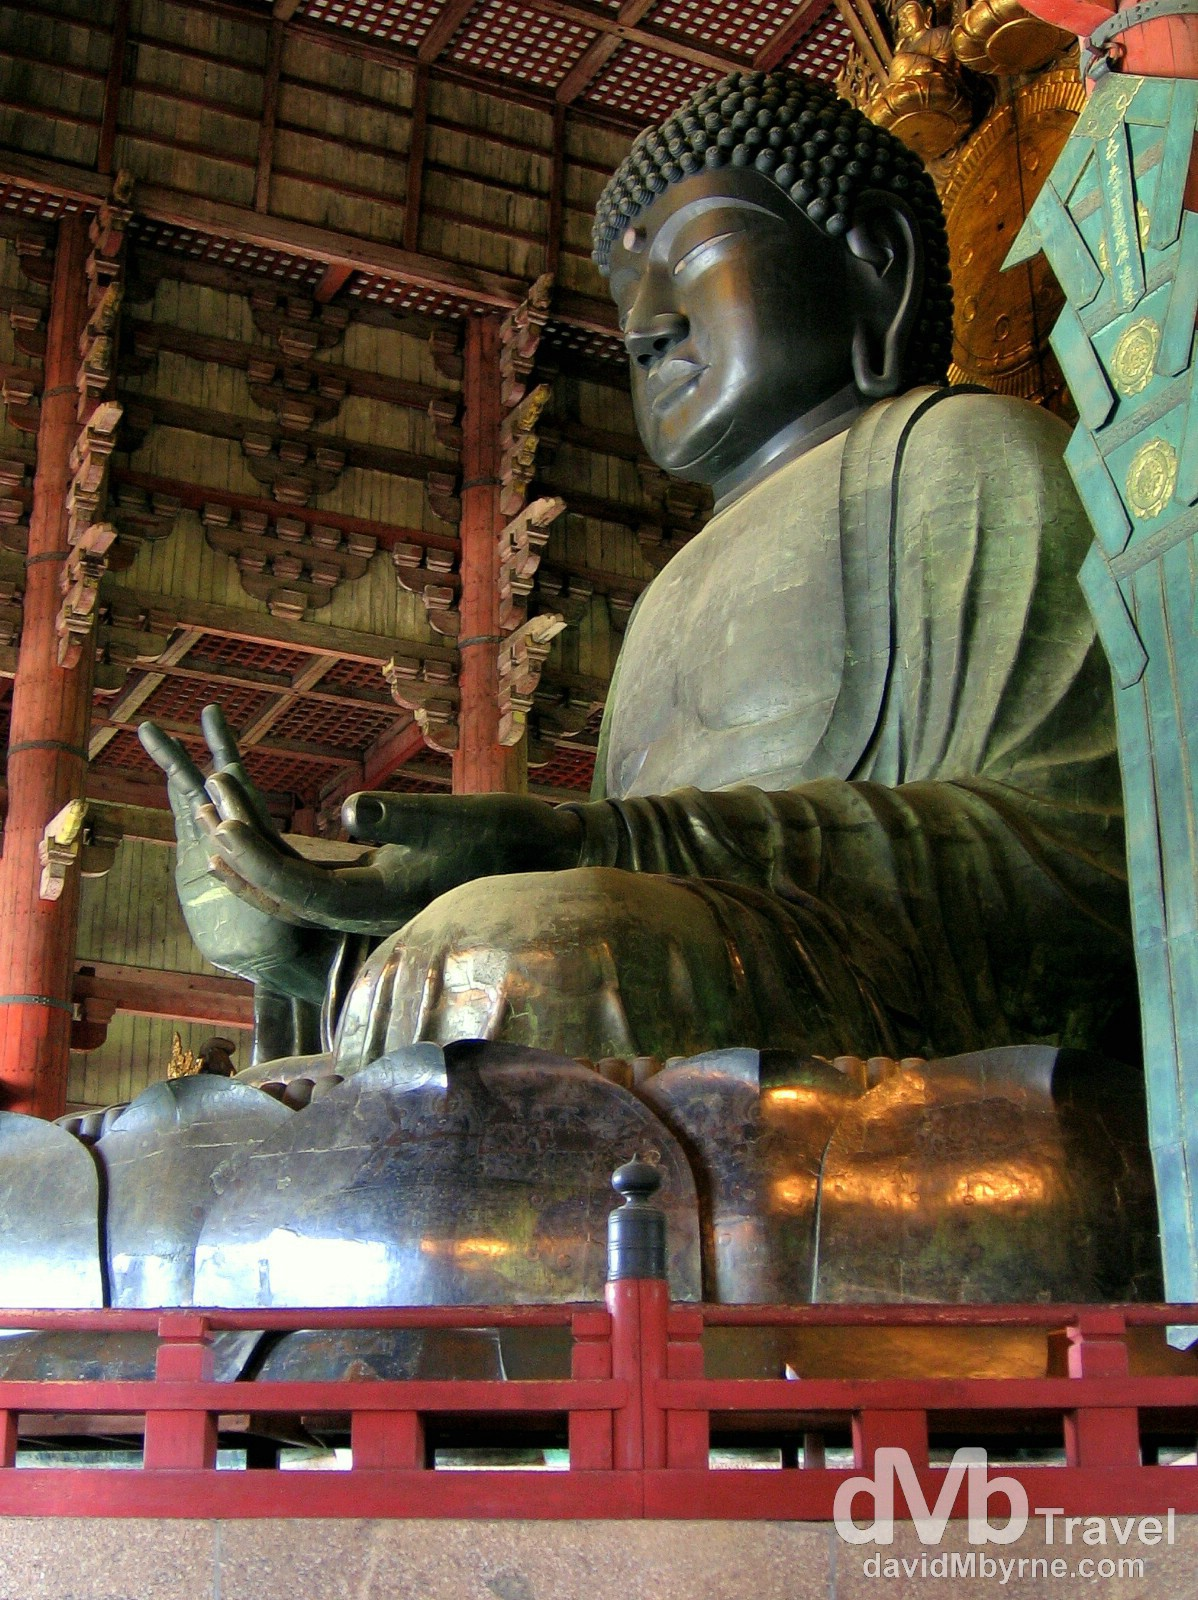 The Great Buddha of Nara in the Daibutsuden (Great Buddha Hall) of the Todai-ji Temple, Nara, Honshu, Japan. July 19th, 2005.